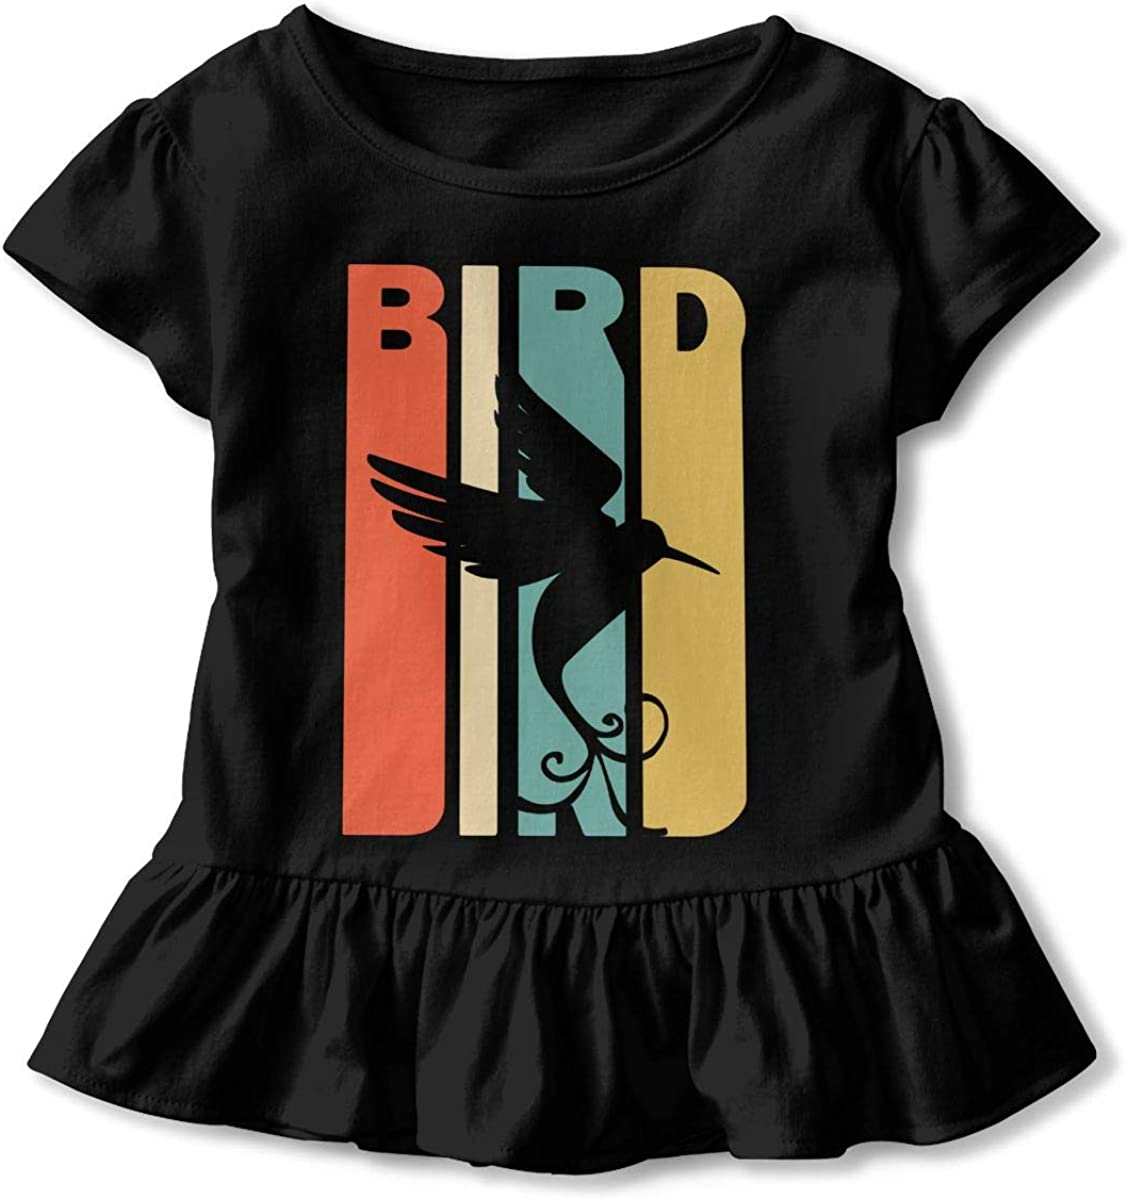 2-6T Ruffled Tunic Tops with Falbala Short Sleeve Retro Style Bird Silhouette T-Shirts for Kids